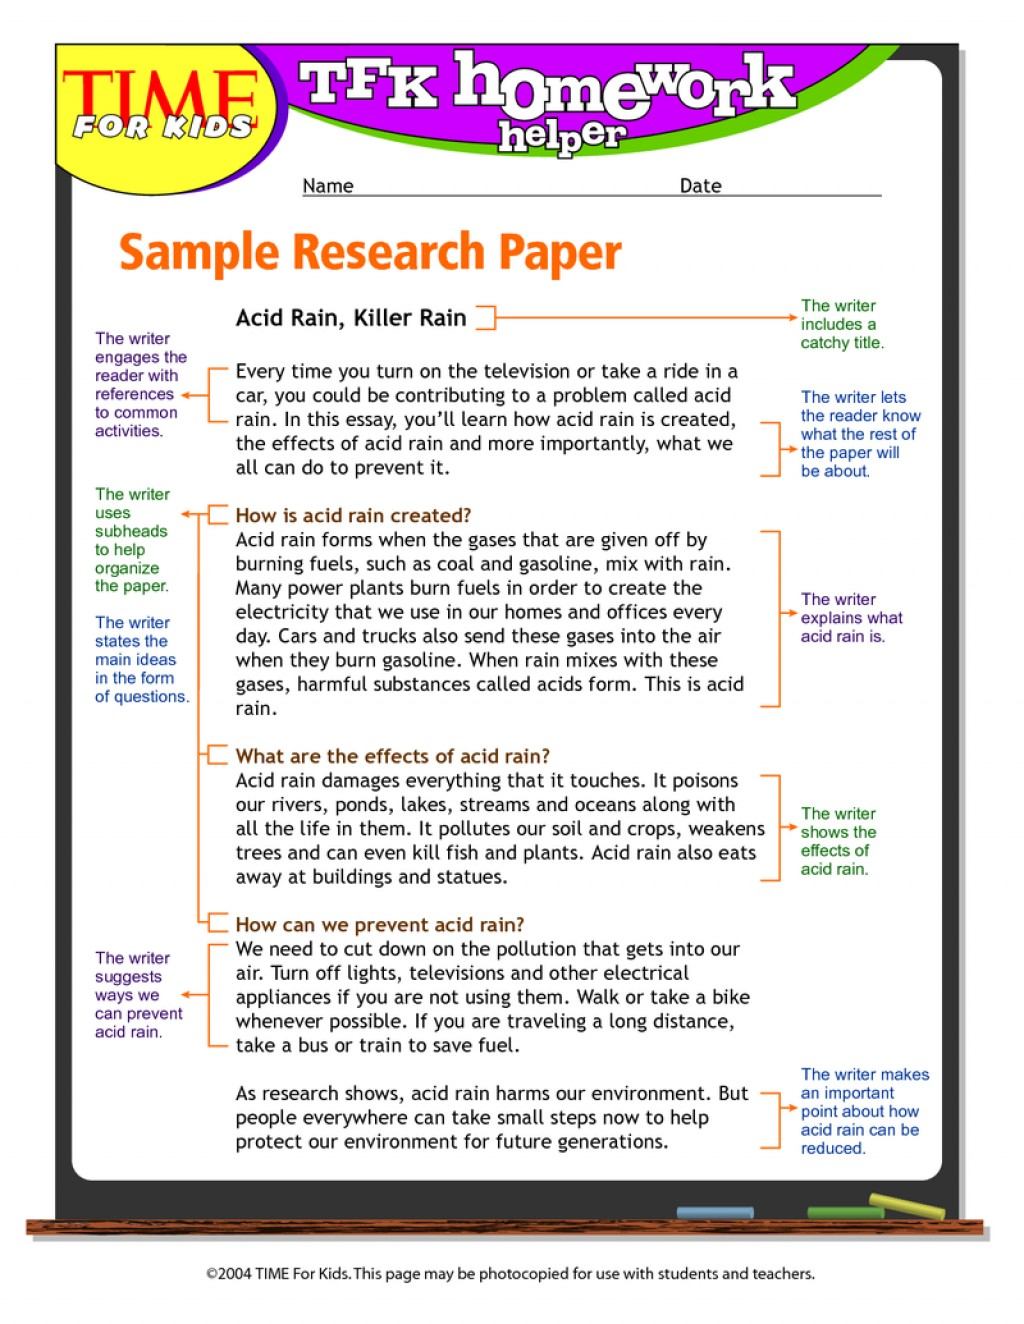 002 Writting Research Dreaded A Paper Tips For Writing Introduction Proposal Template In Apa Format Large